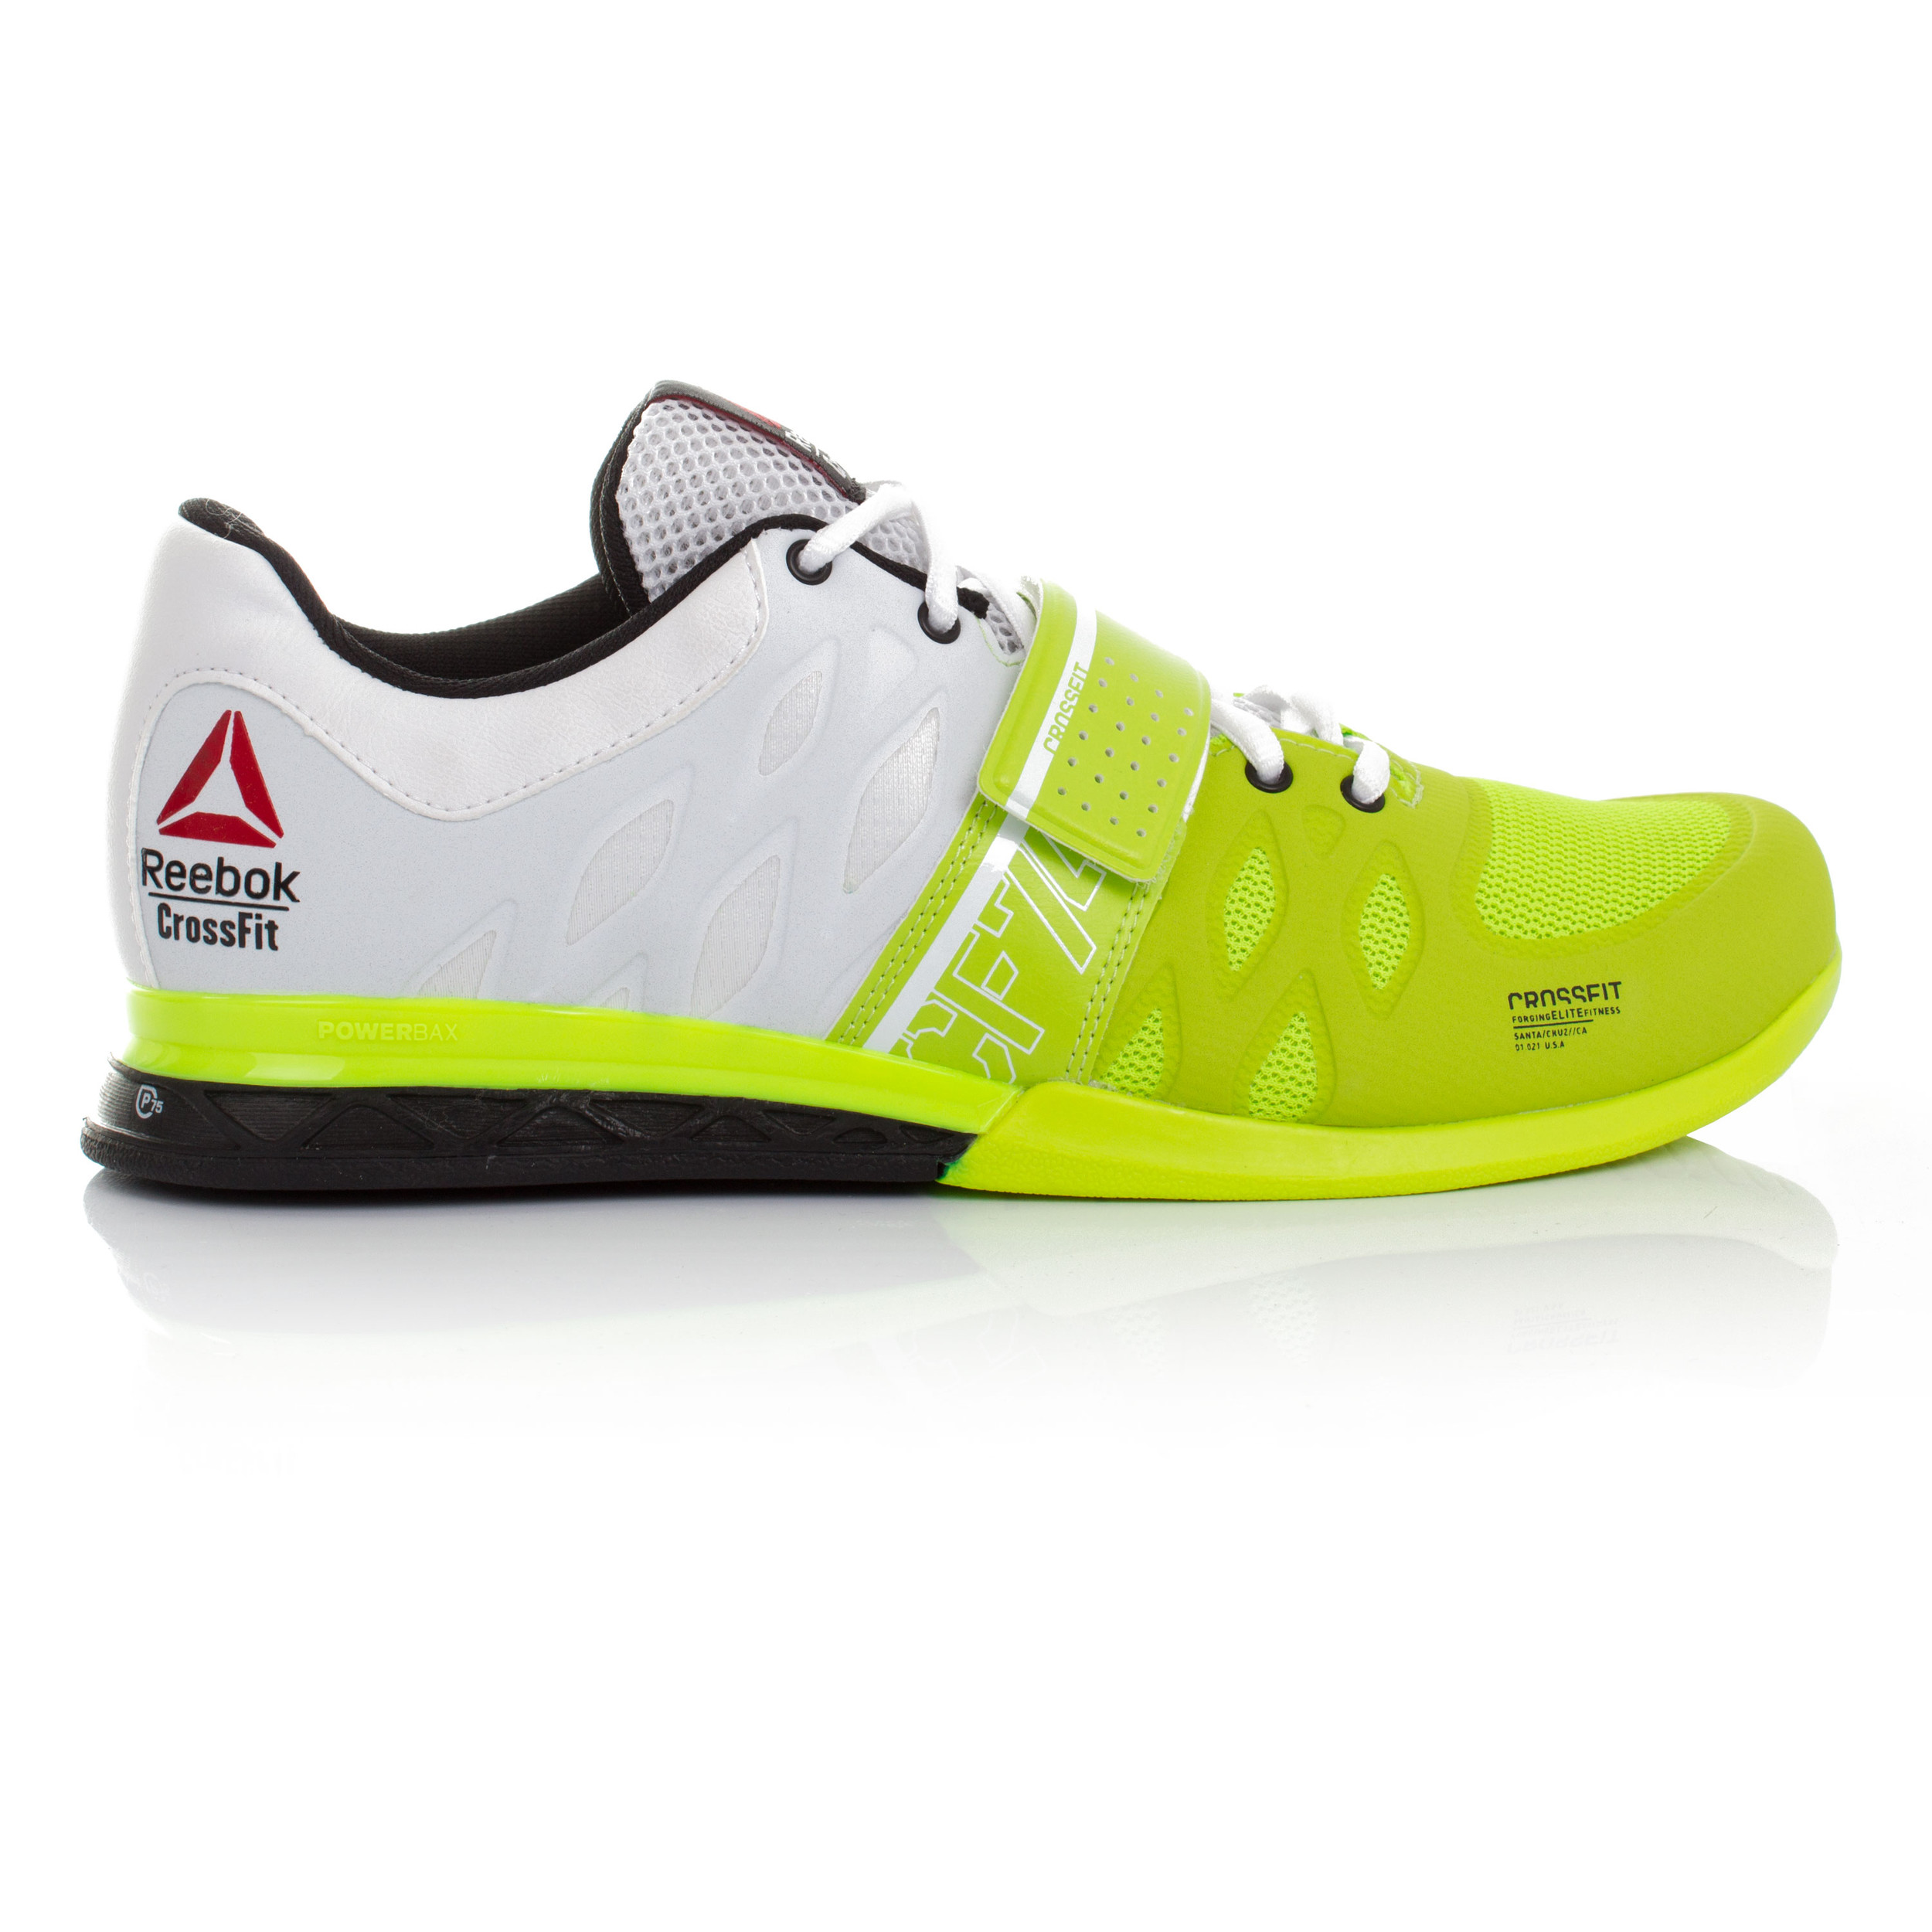 reebok crossfit lifter 2 mens weightlifting sports shoes